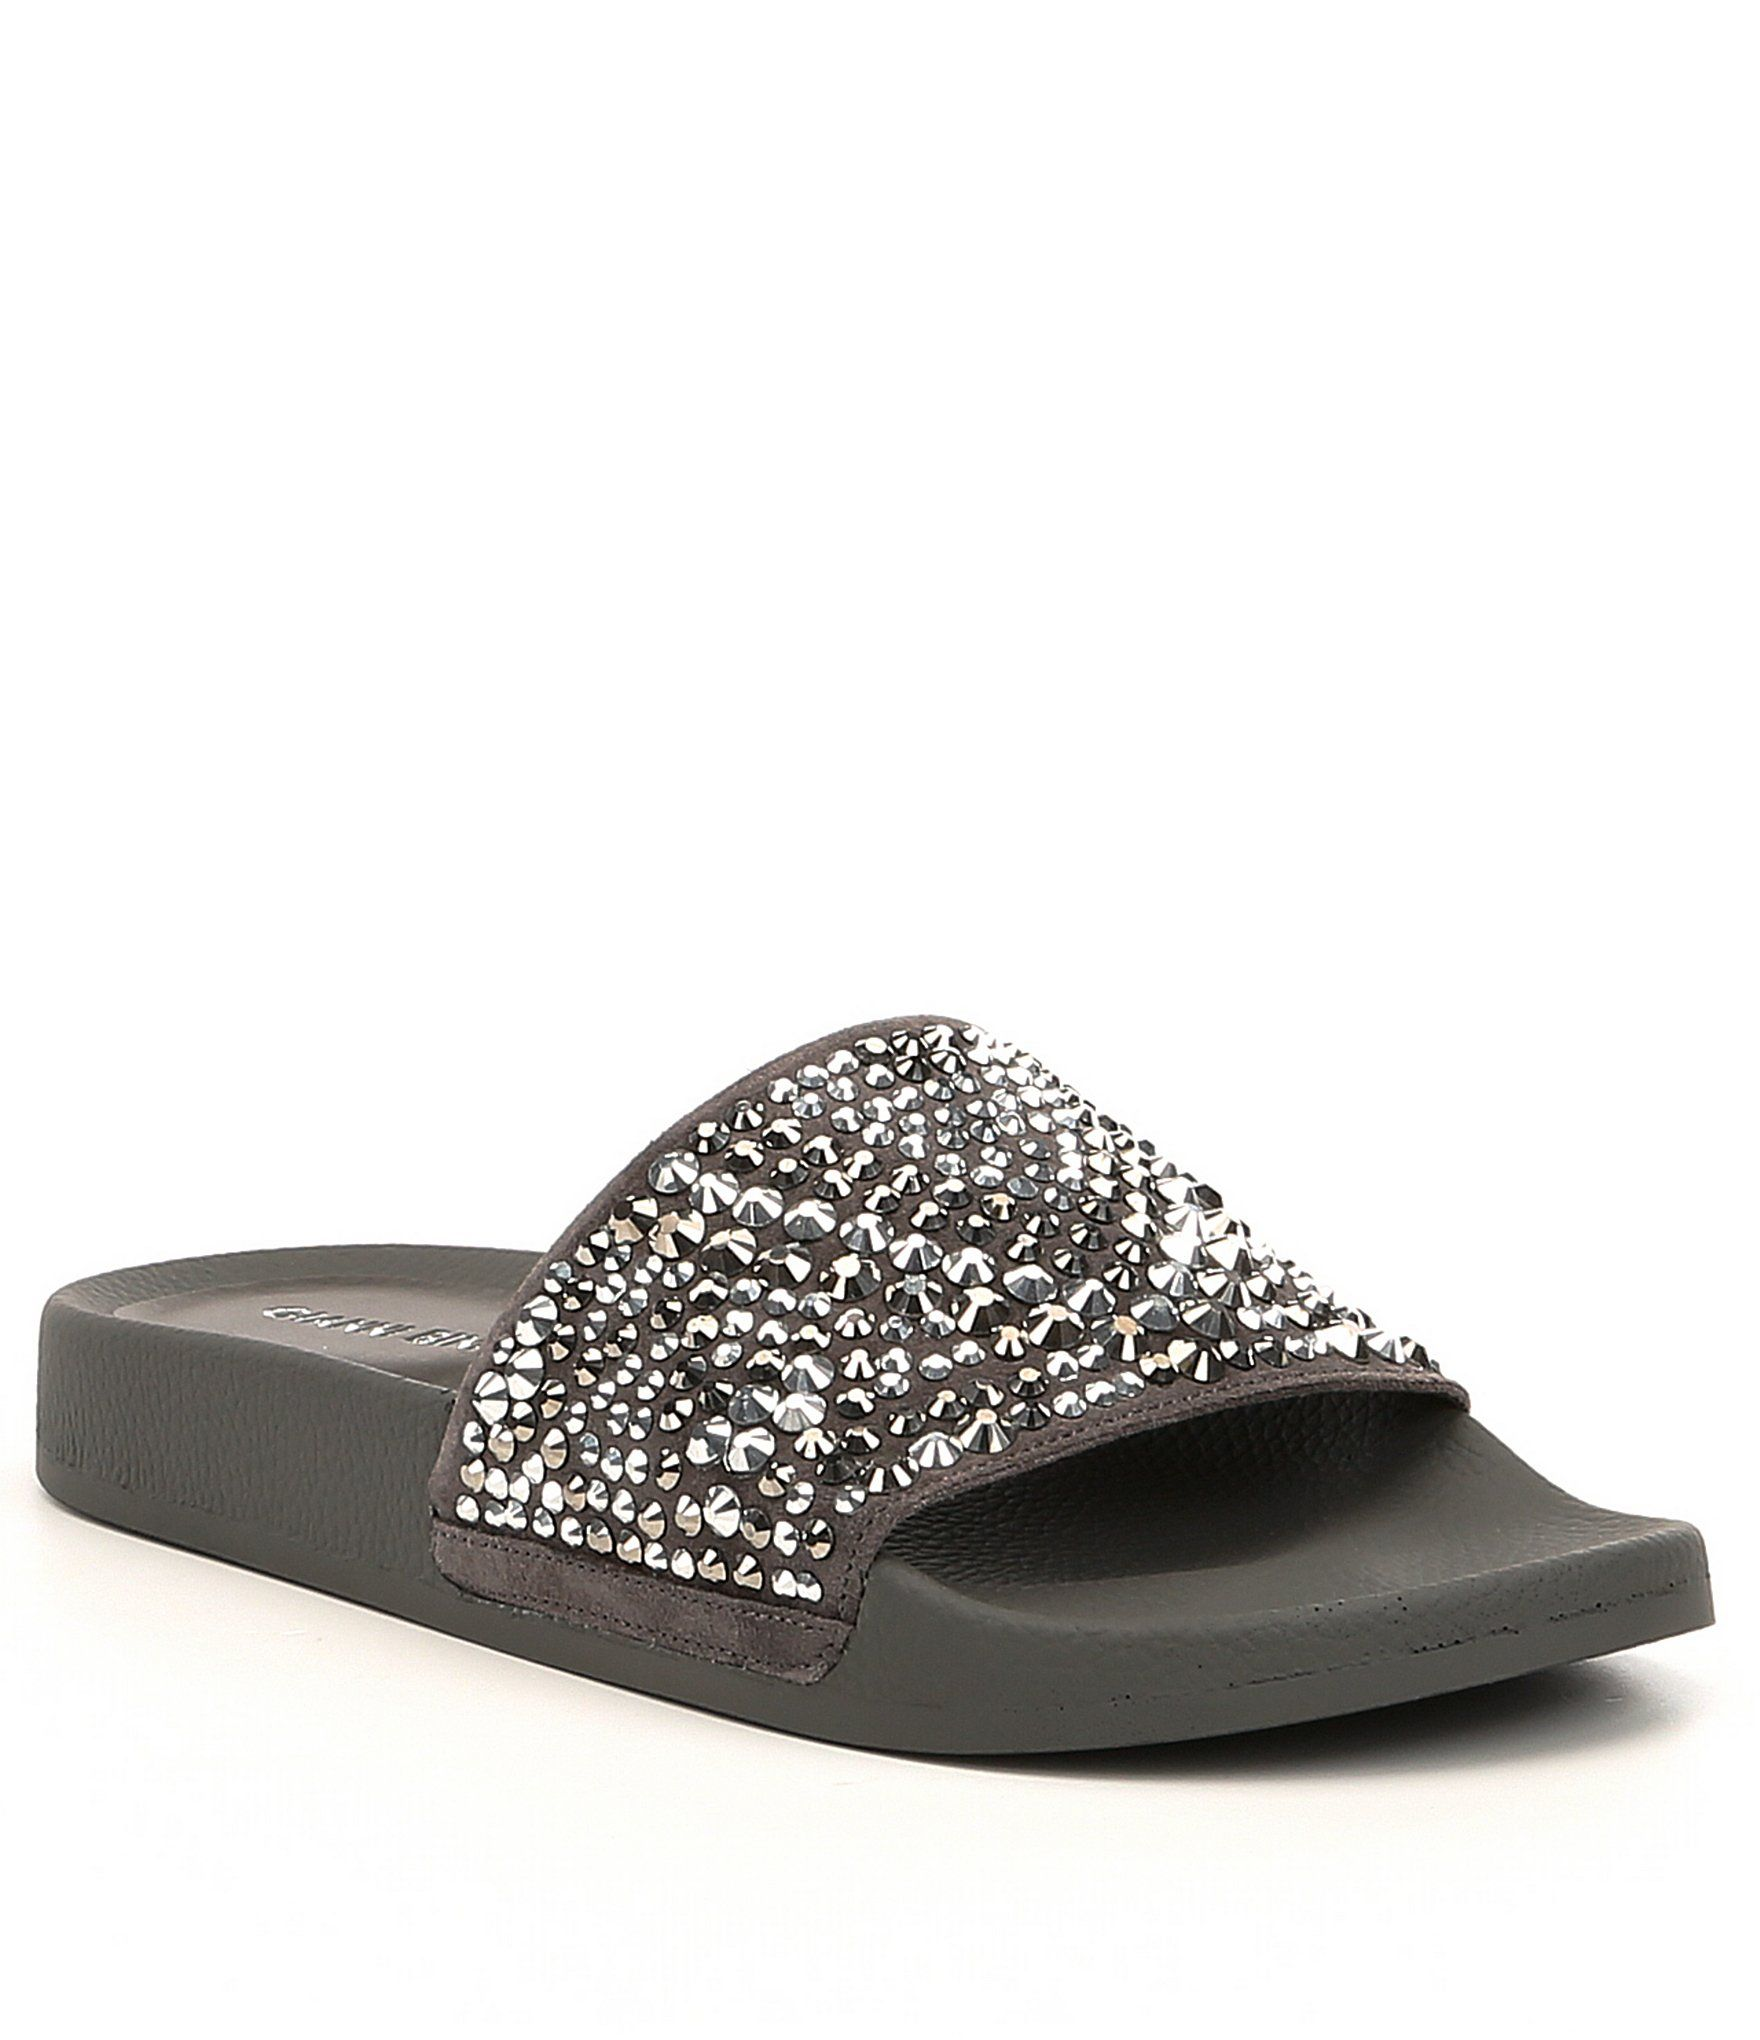 Gemella Jeweled Suede Slide Sandals bxxwHuPo